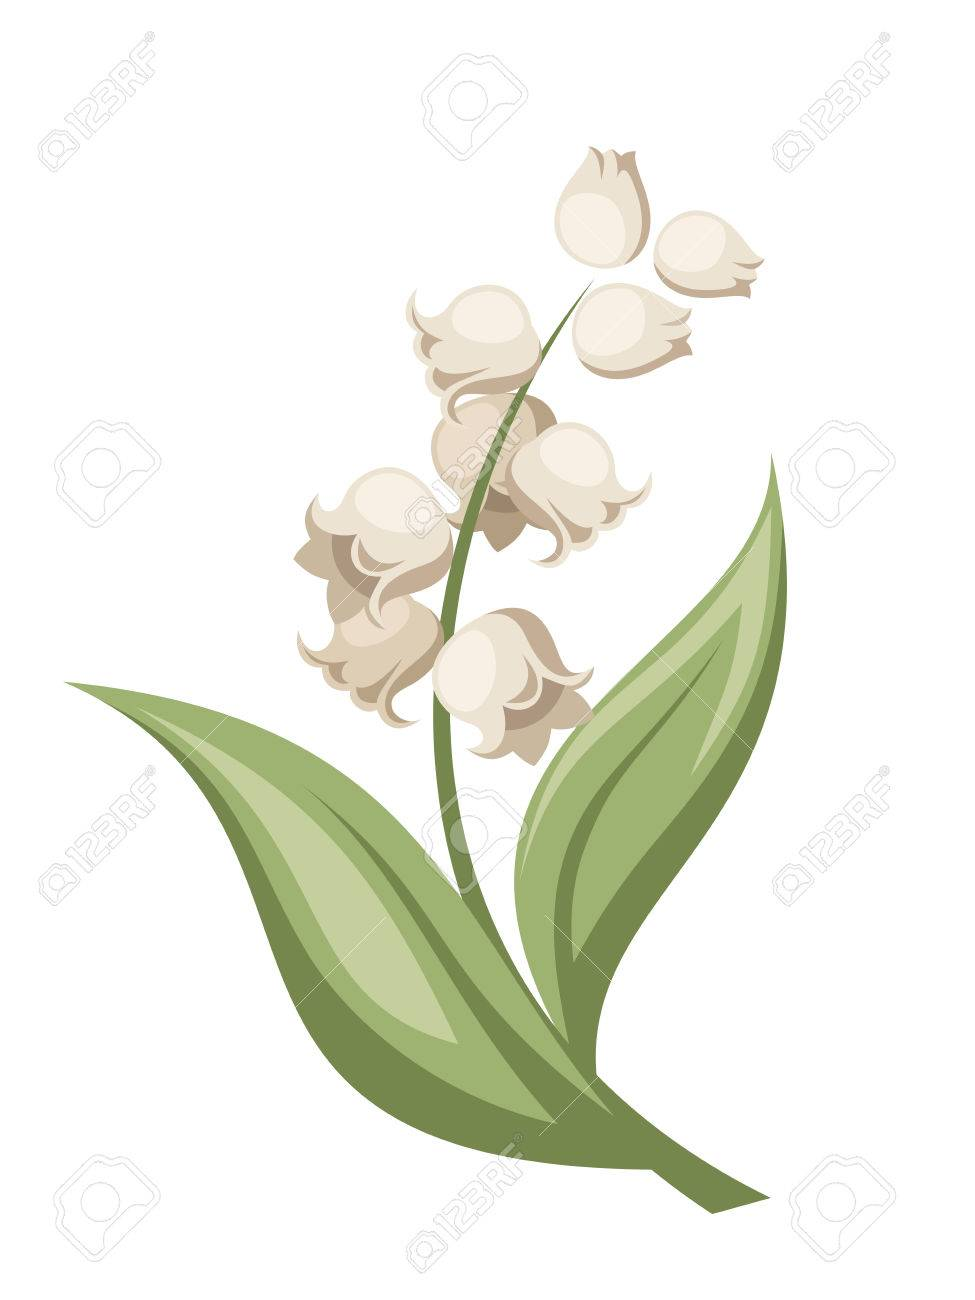 Lily of the valley flower Vector illustration.